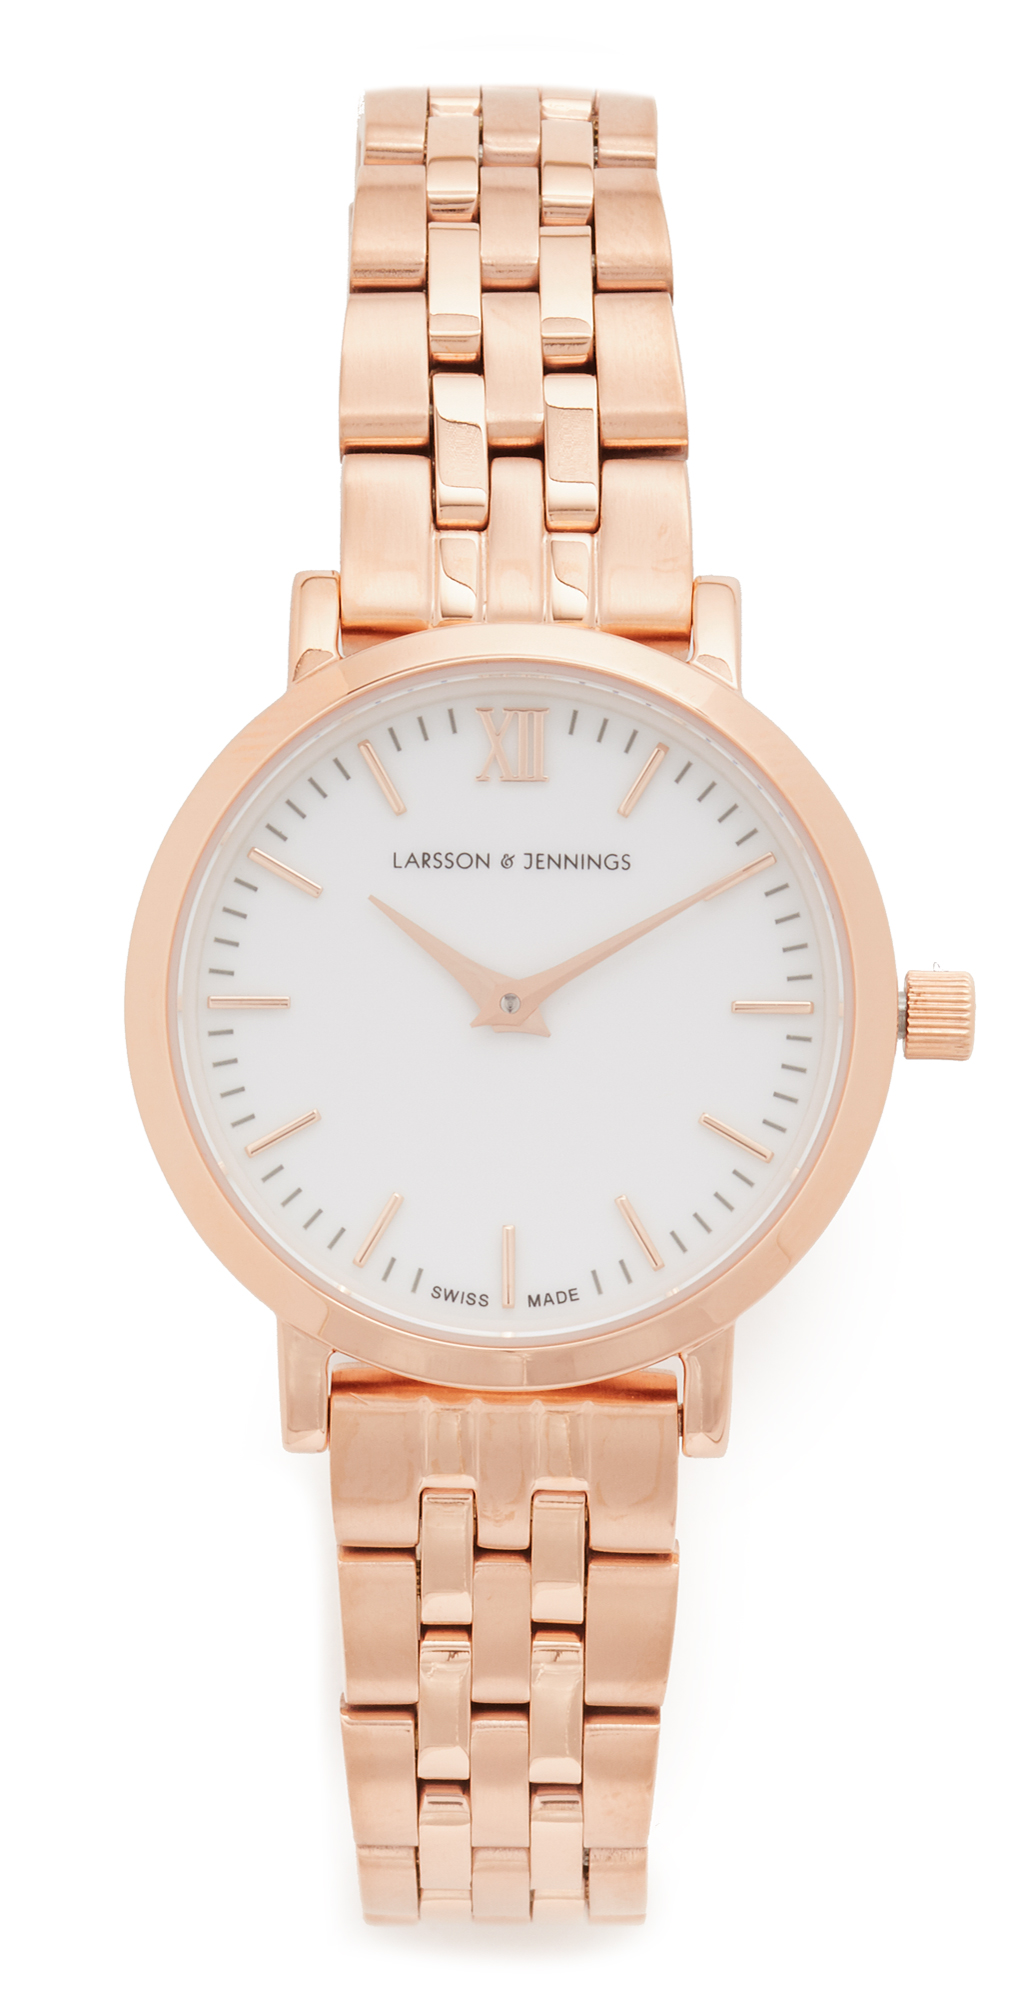 Lugano Small 5 Link Watch Larsson  Jennings